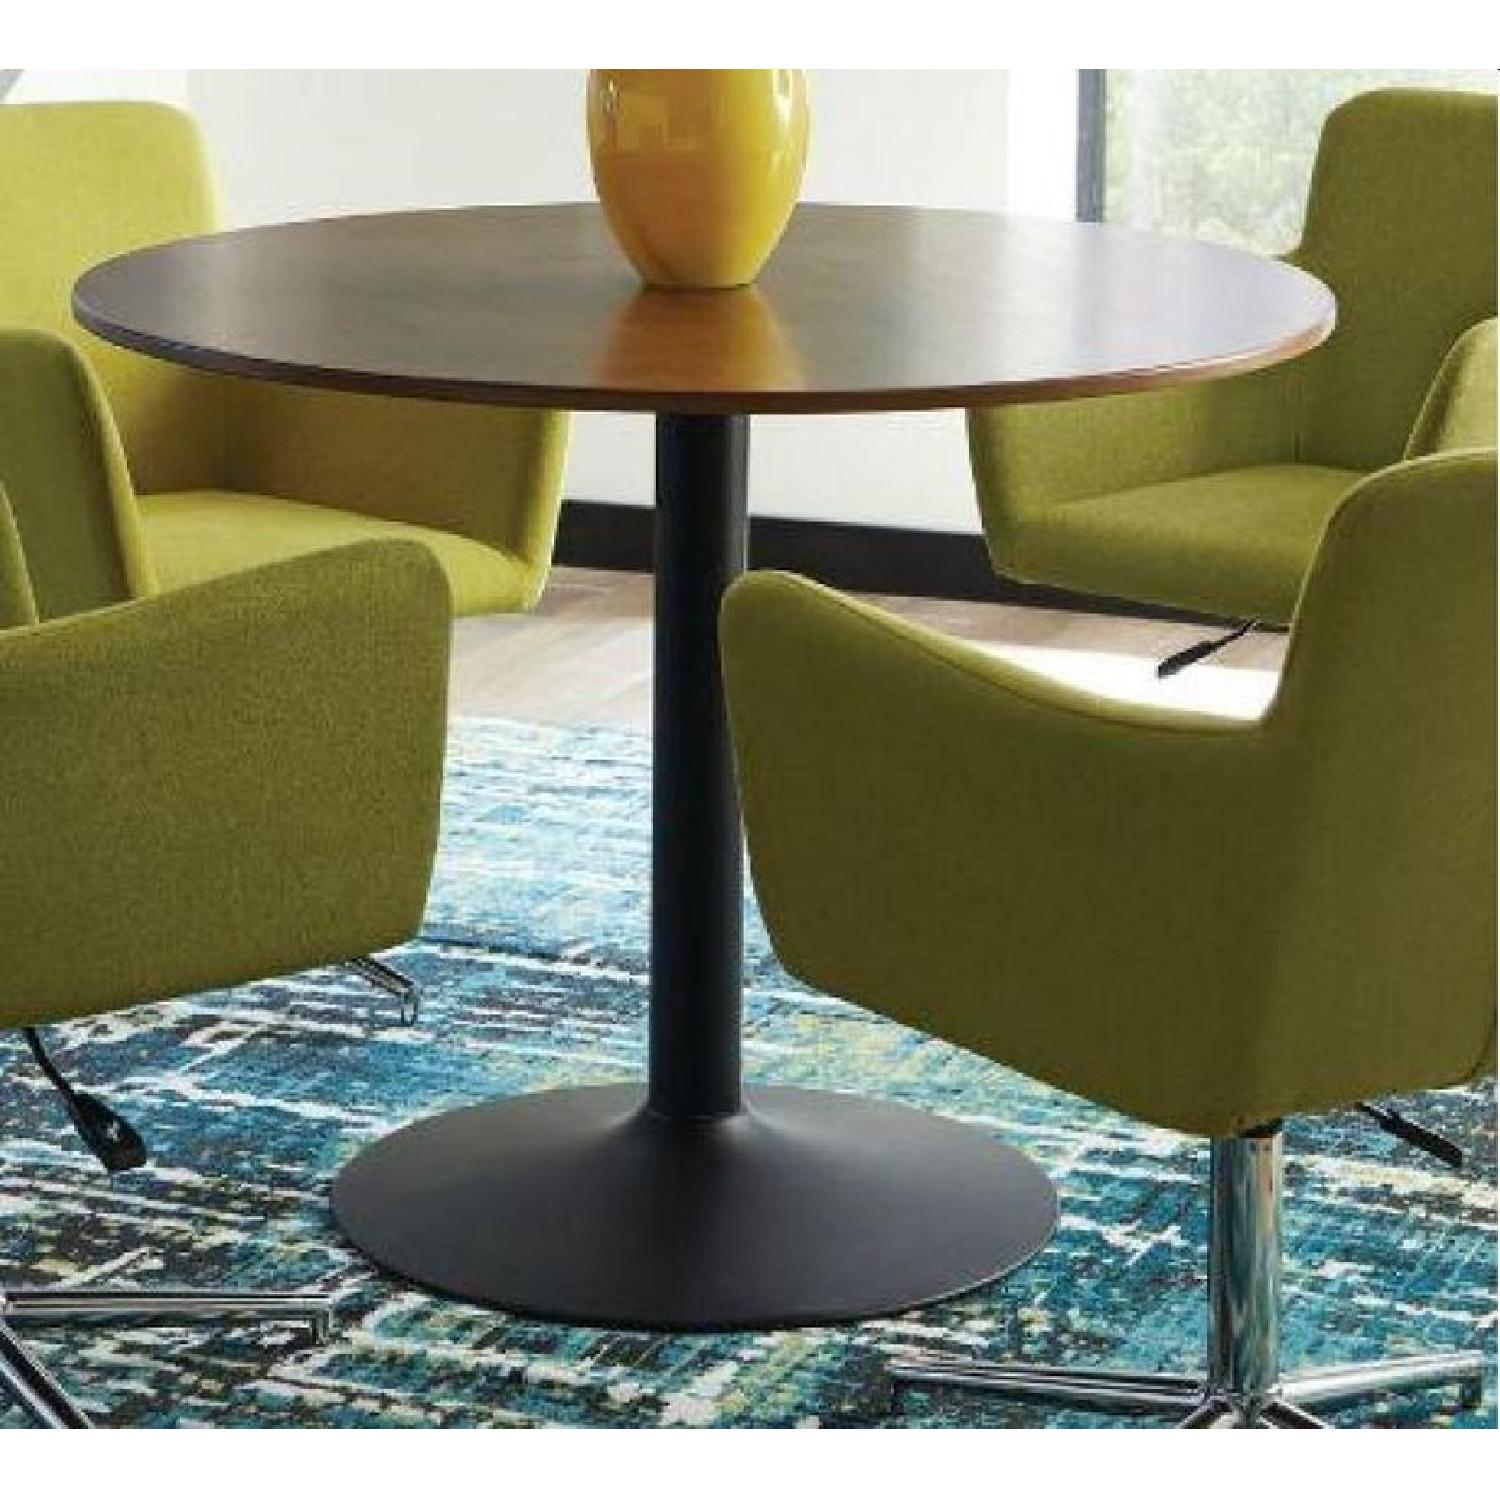 Mid Century Modern Style Dining Table in High Gloss Finish - image-6